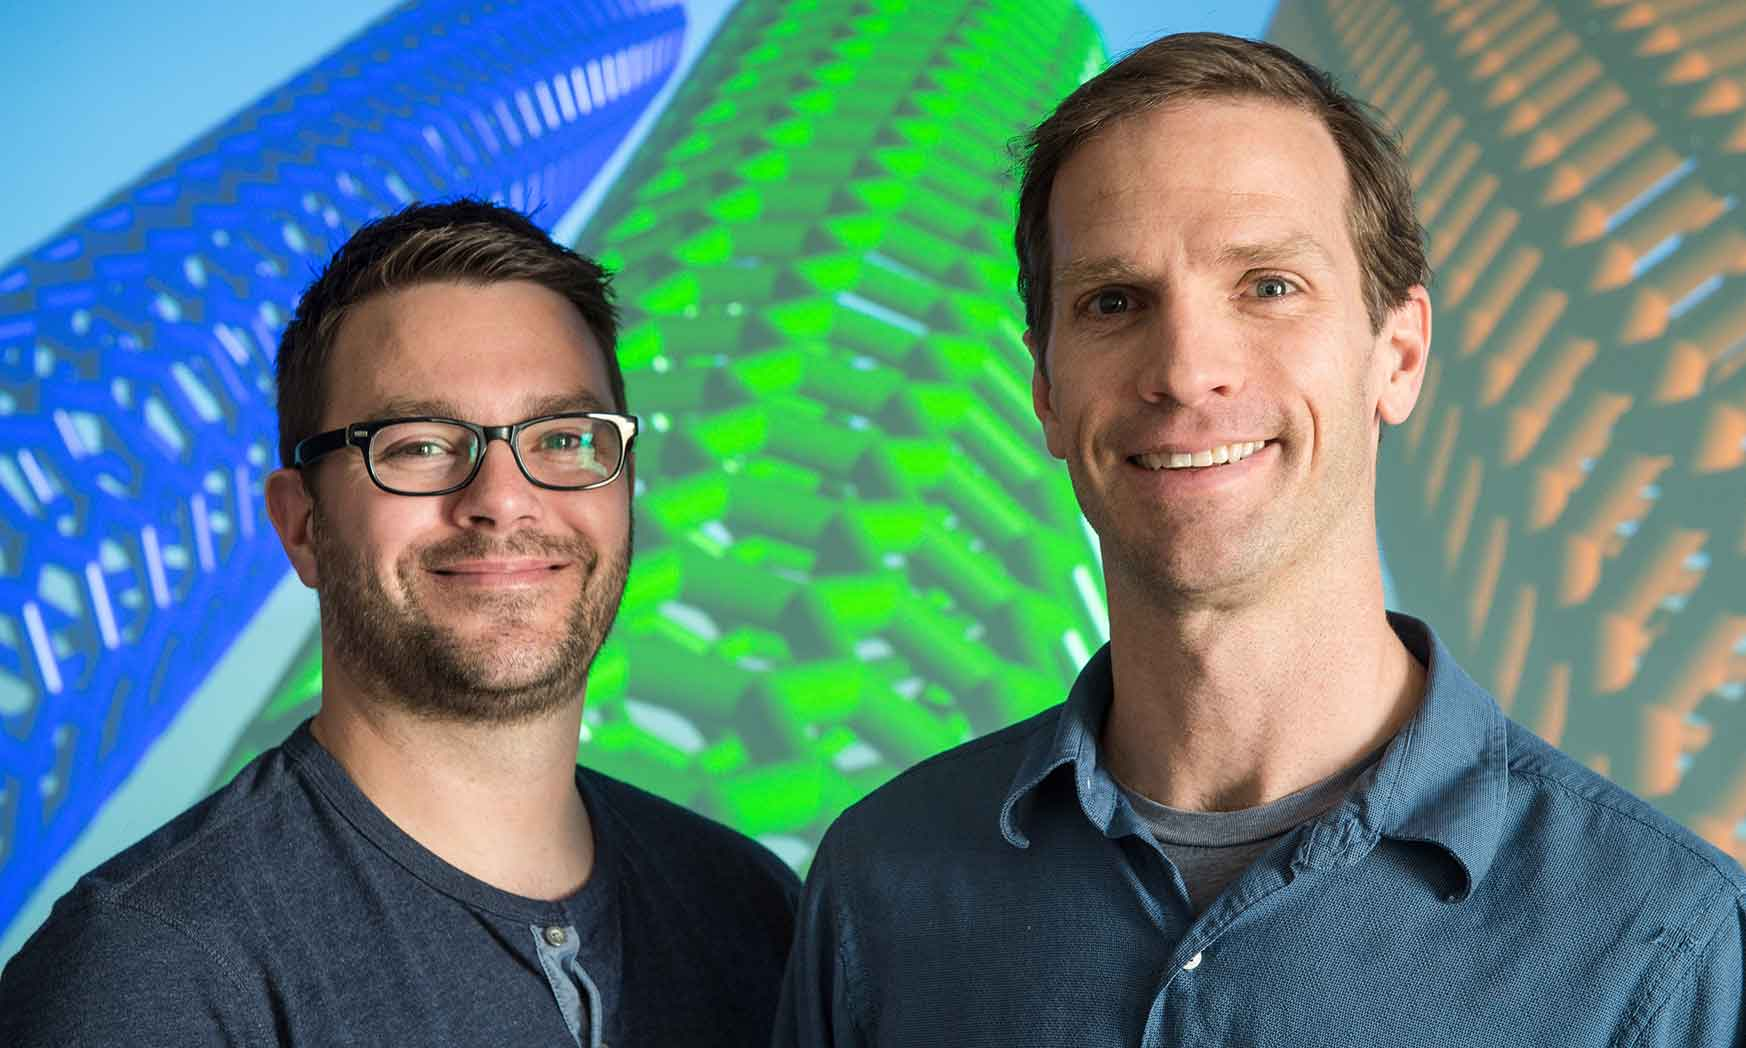 Two men stand in front of a screen that shows carbon nanotubes.